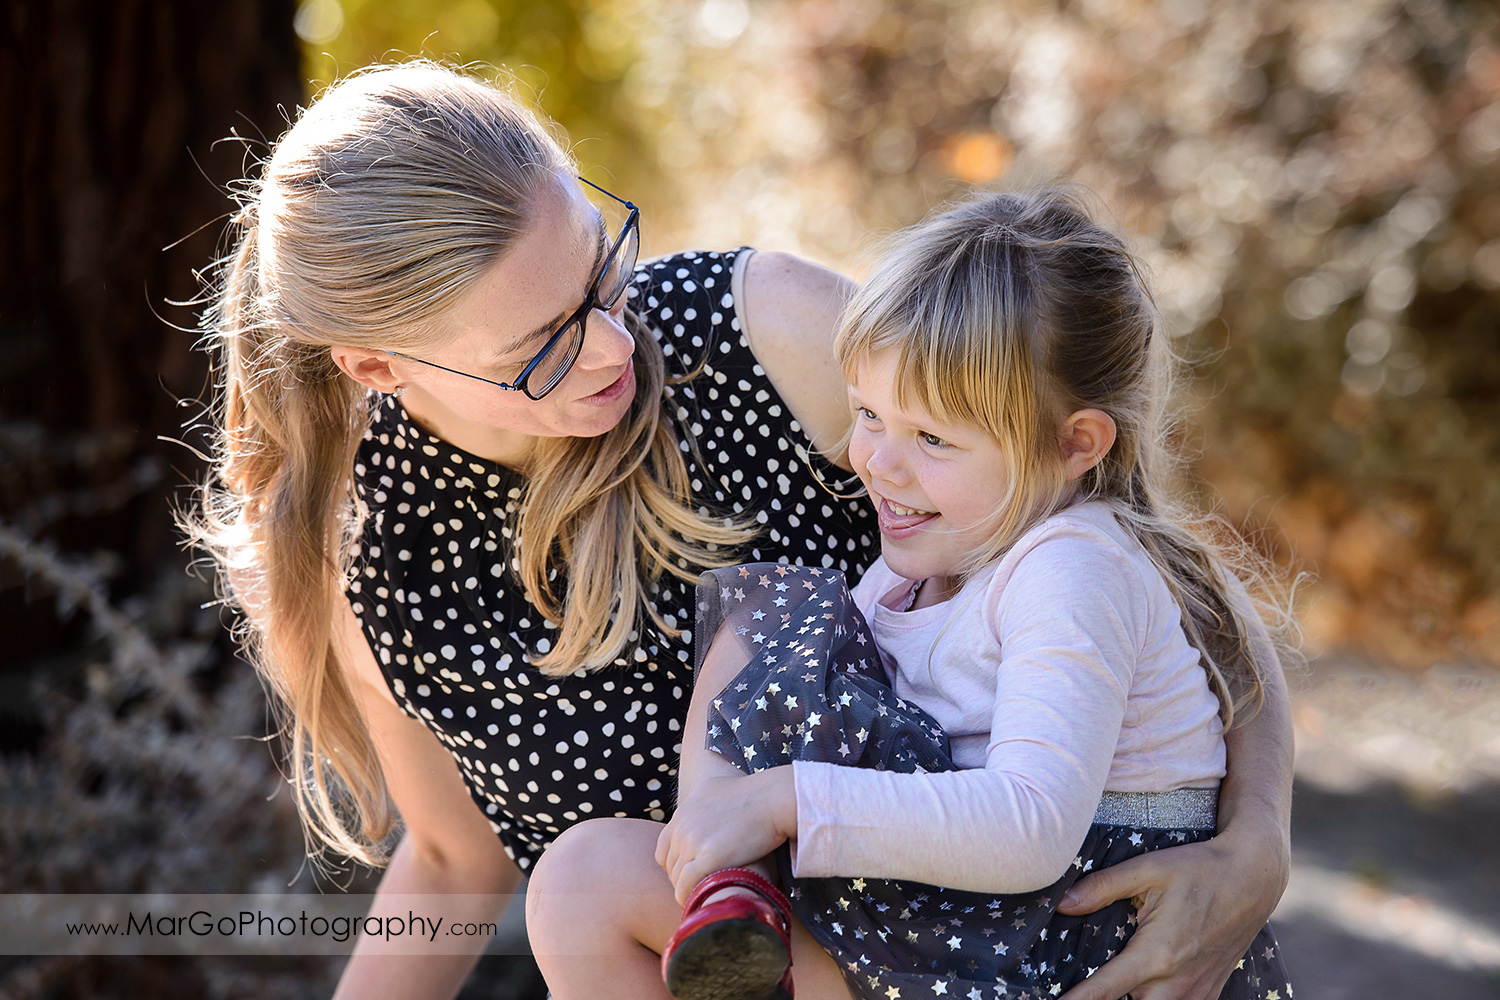 portarit of woman in black dress with white dots and little girl in navy blue skirt with golden stars at Mountain View Shoreline Lake Park